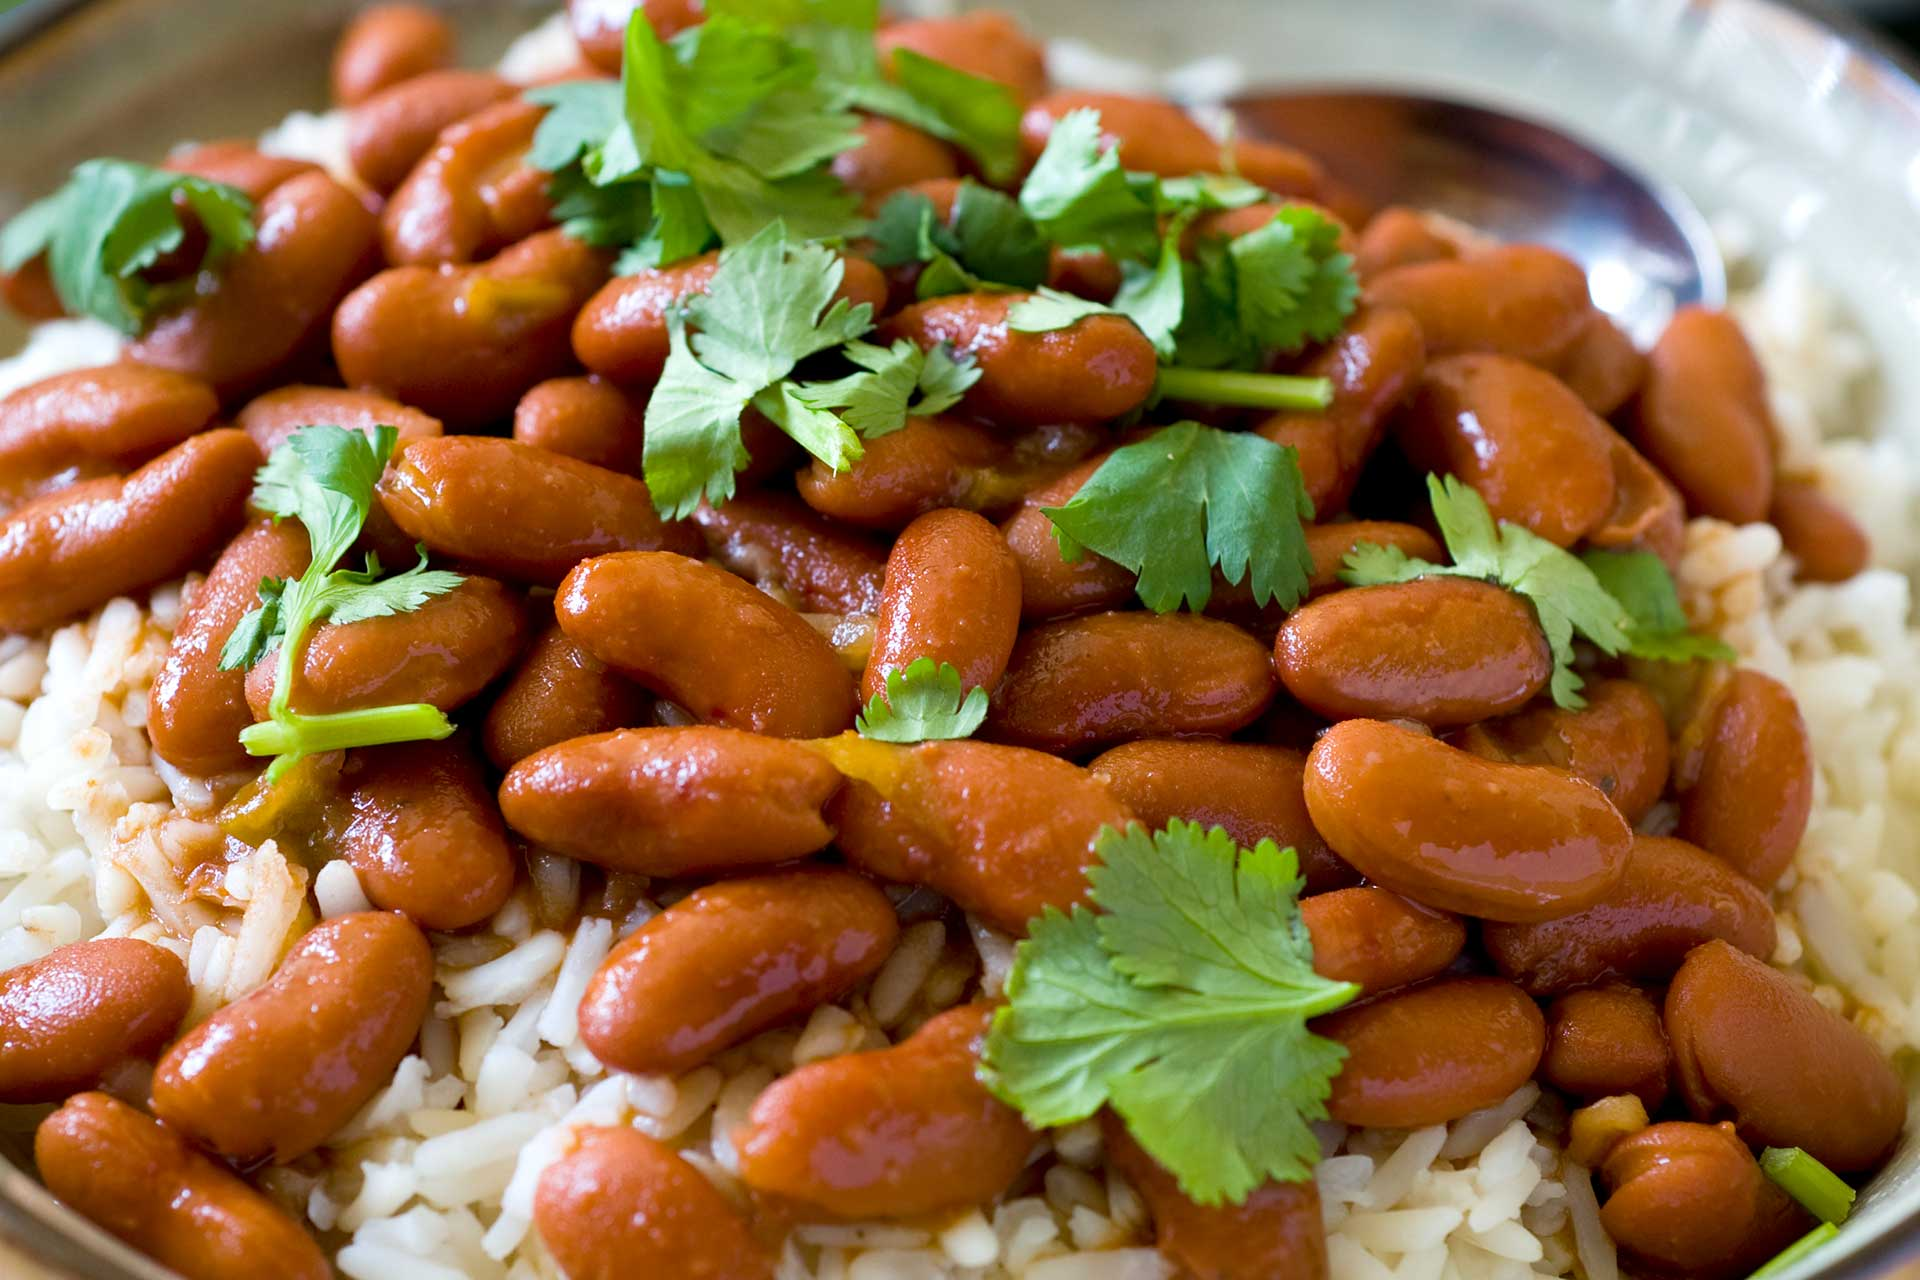 Photo of rice and beans dish